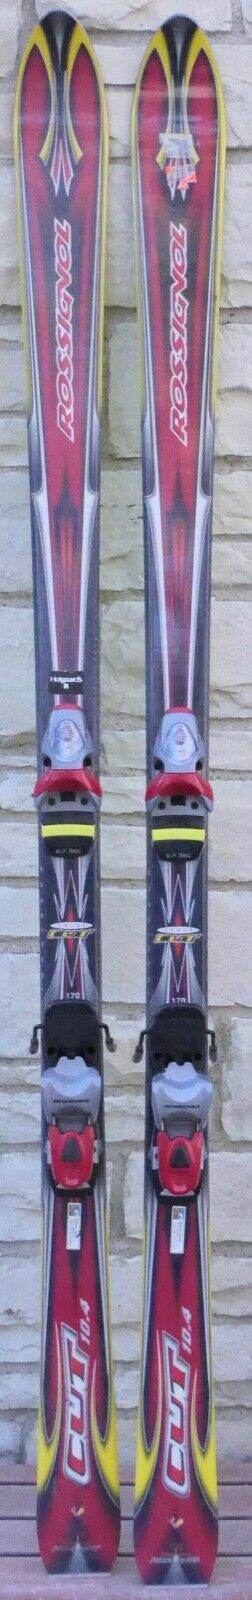 ROSSIGNOL CROSS CUT LENGTH 170 SKIS ROSSIGNOL FTX 105 BINDINGS